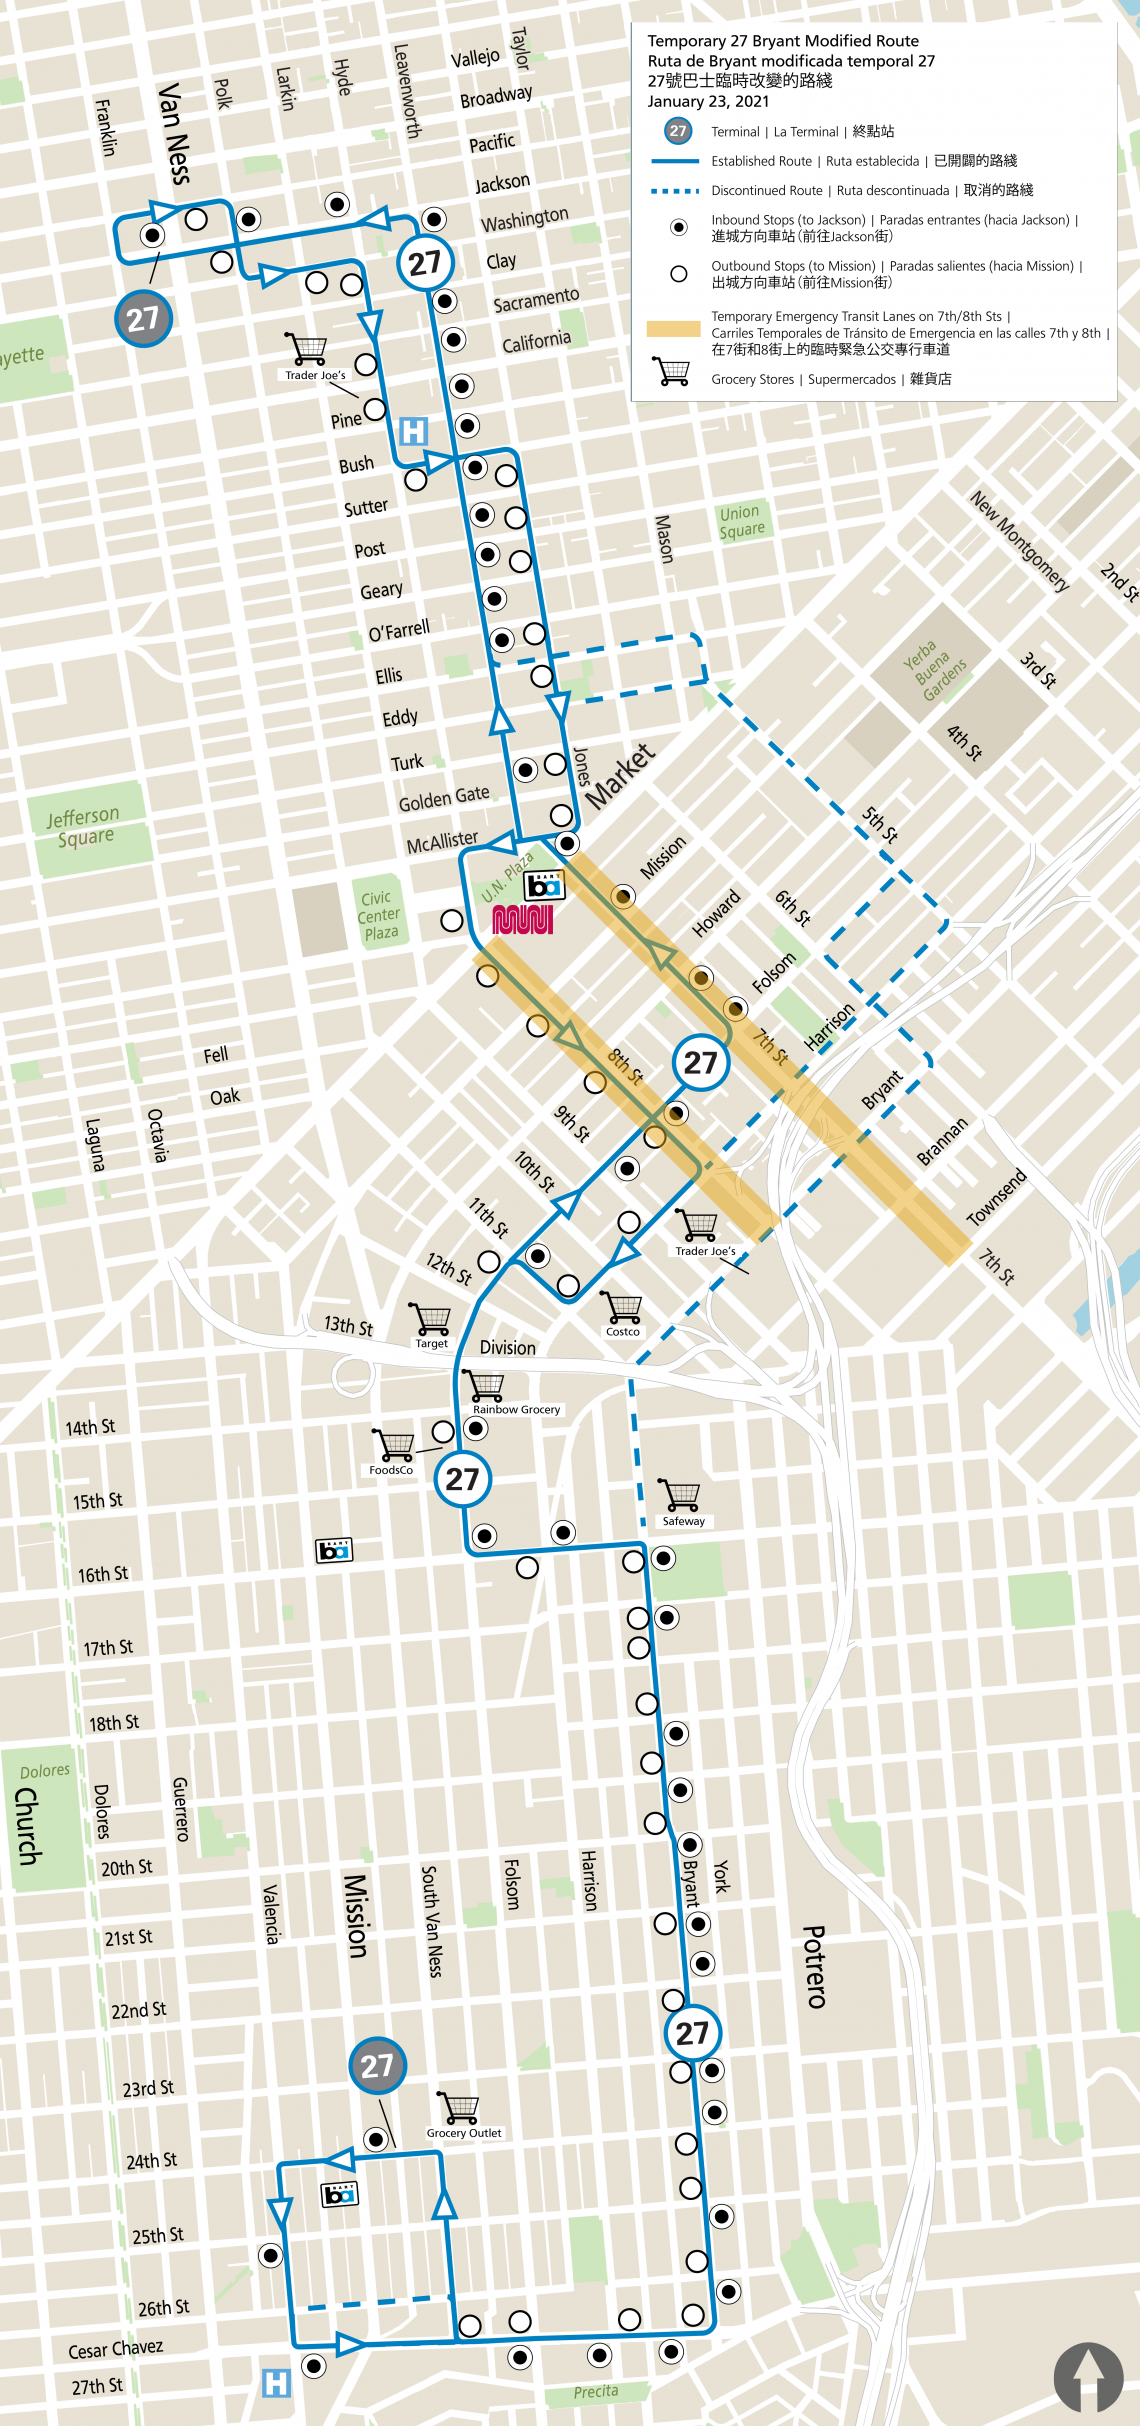 Map of 27 Bryant temporary reroute from 5th Street to 7th and 8th streets